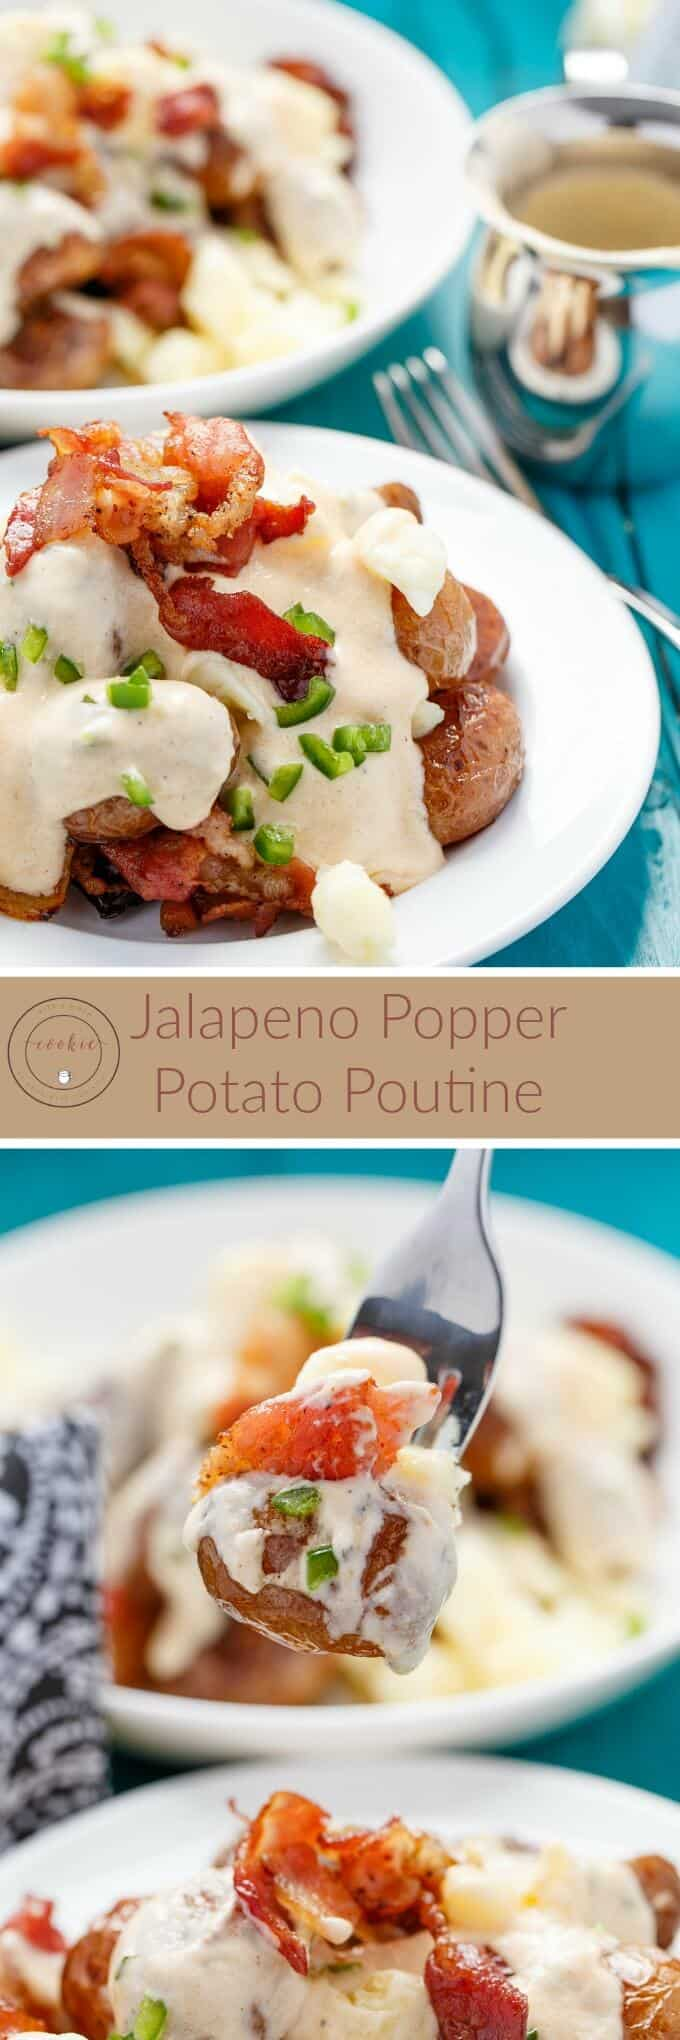 Jalapeno Popper Potato Poutine